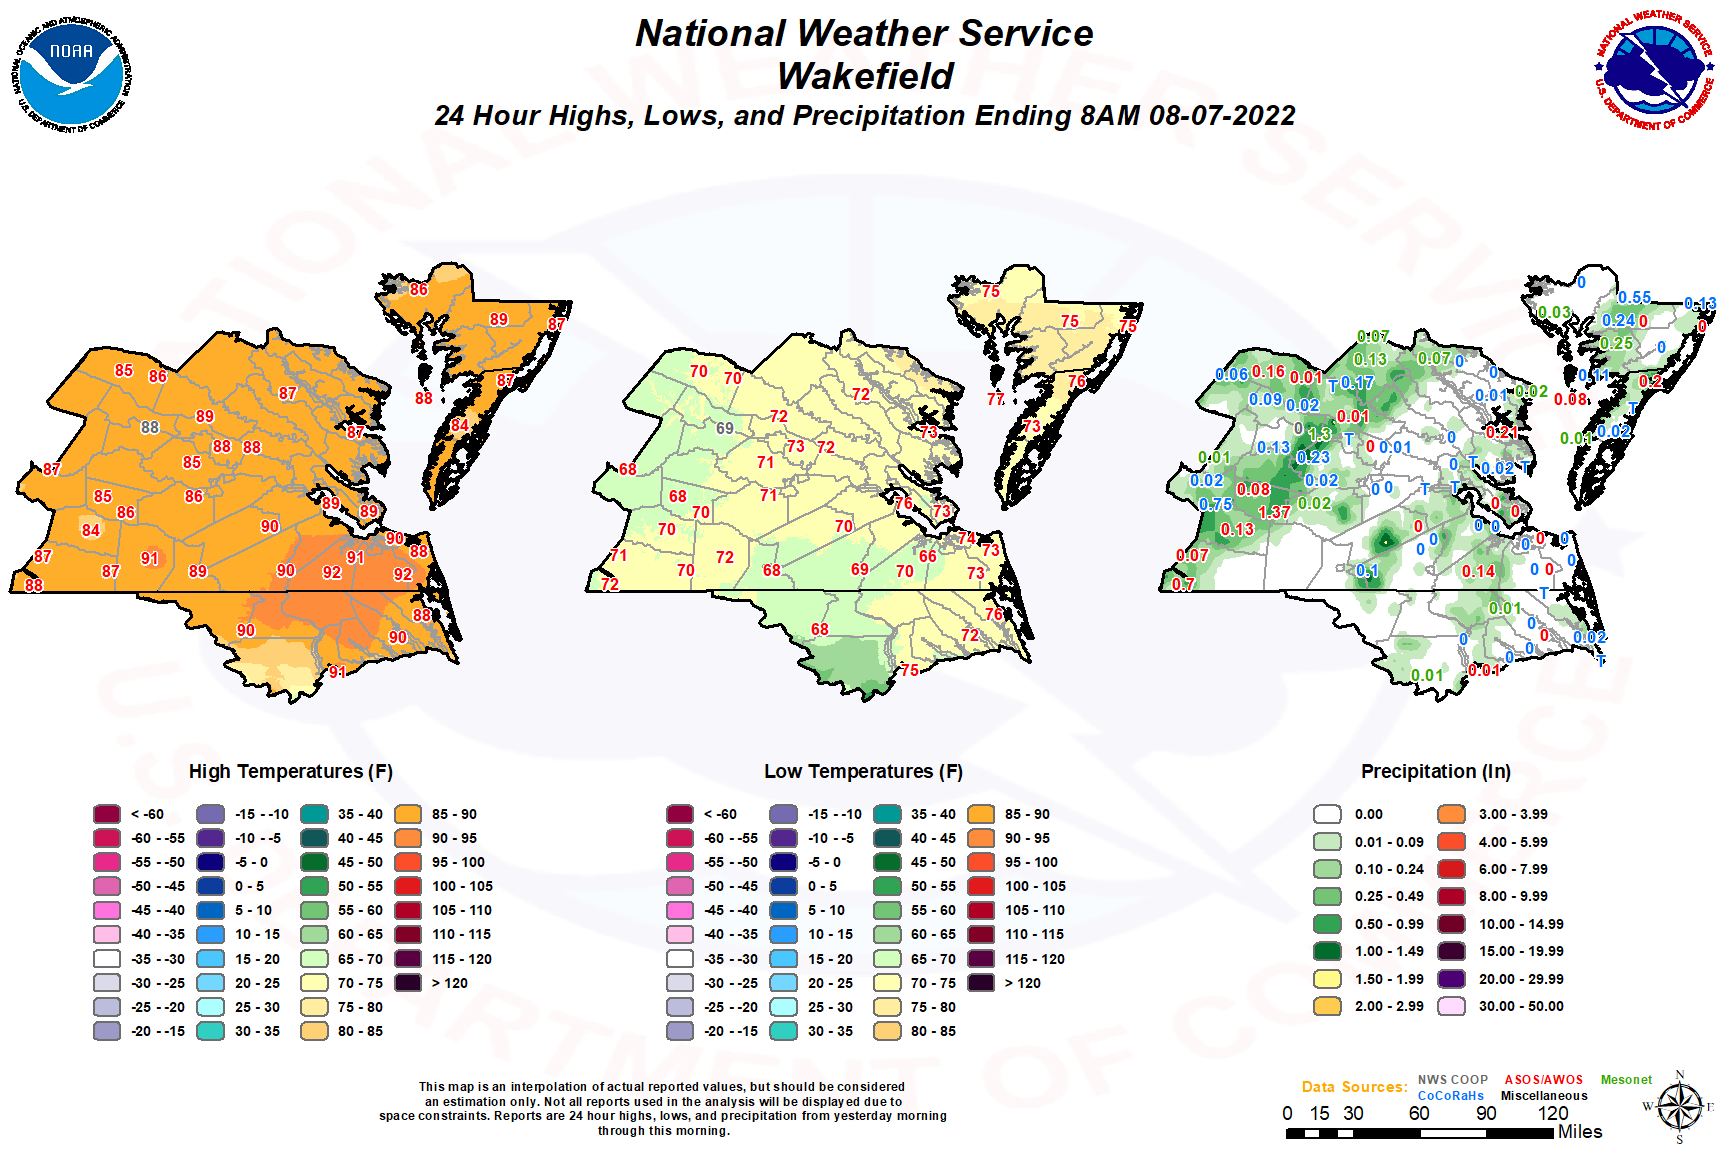 North Carolina Daily Highs, Lows, and Precipitation